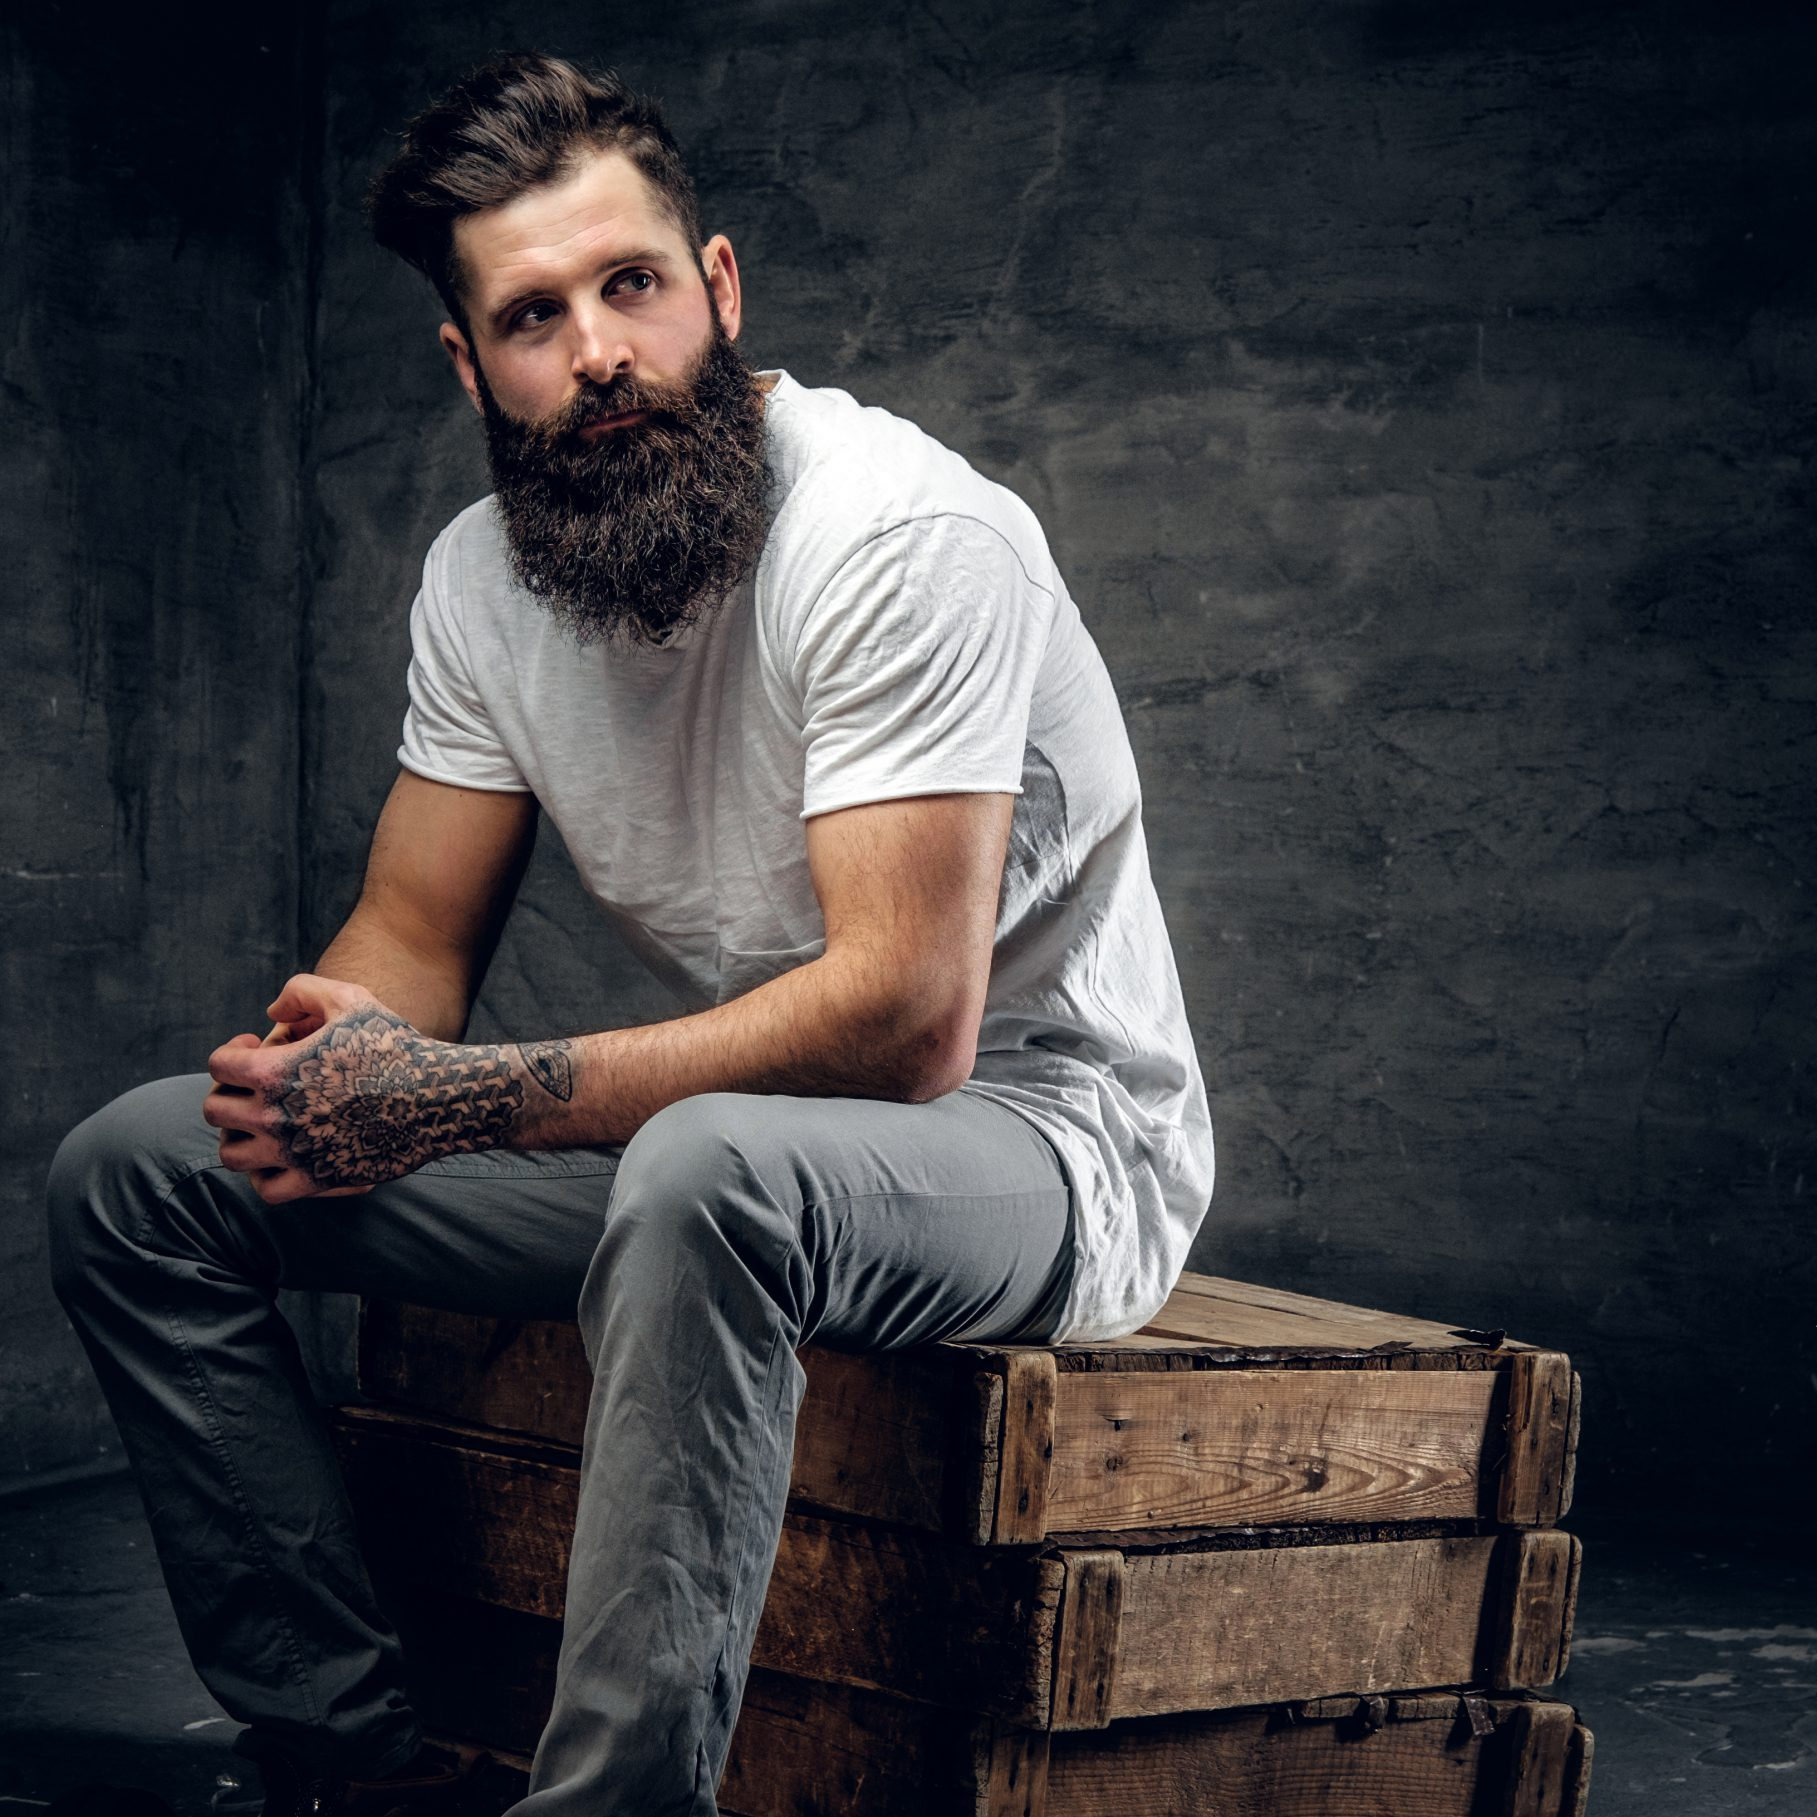 Bearded brutal male with tattoo on arm dressed in a white t shirt sits on a wooden box.